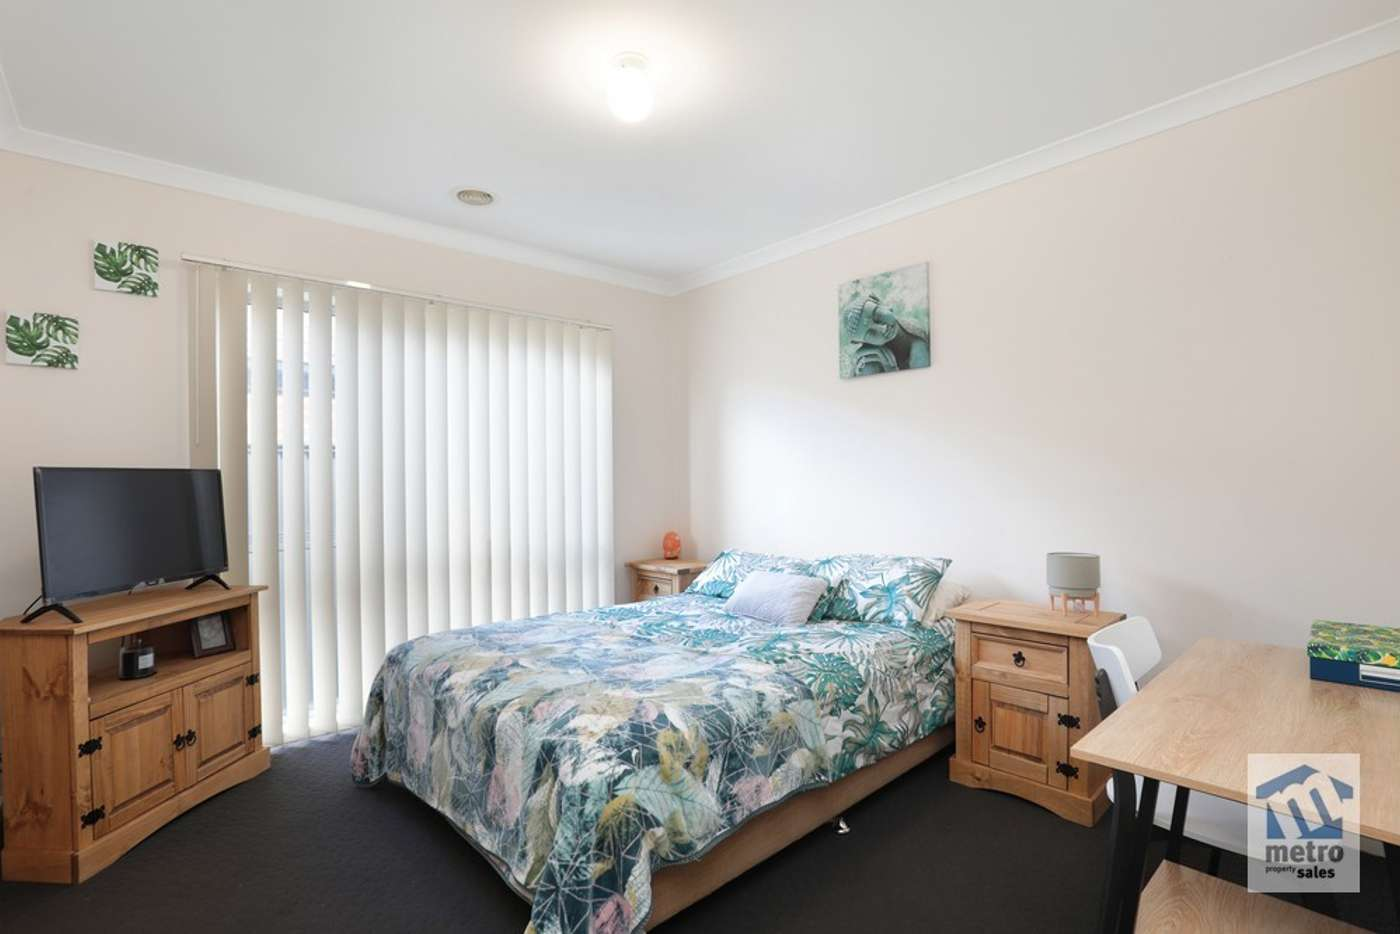 Fifth view of Homely house listing, 14 Taunton Drive, Pakenham VIC 3810